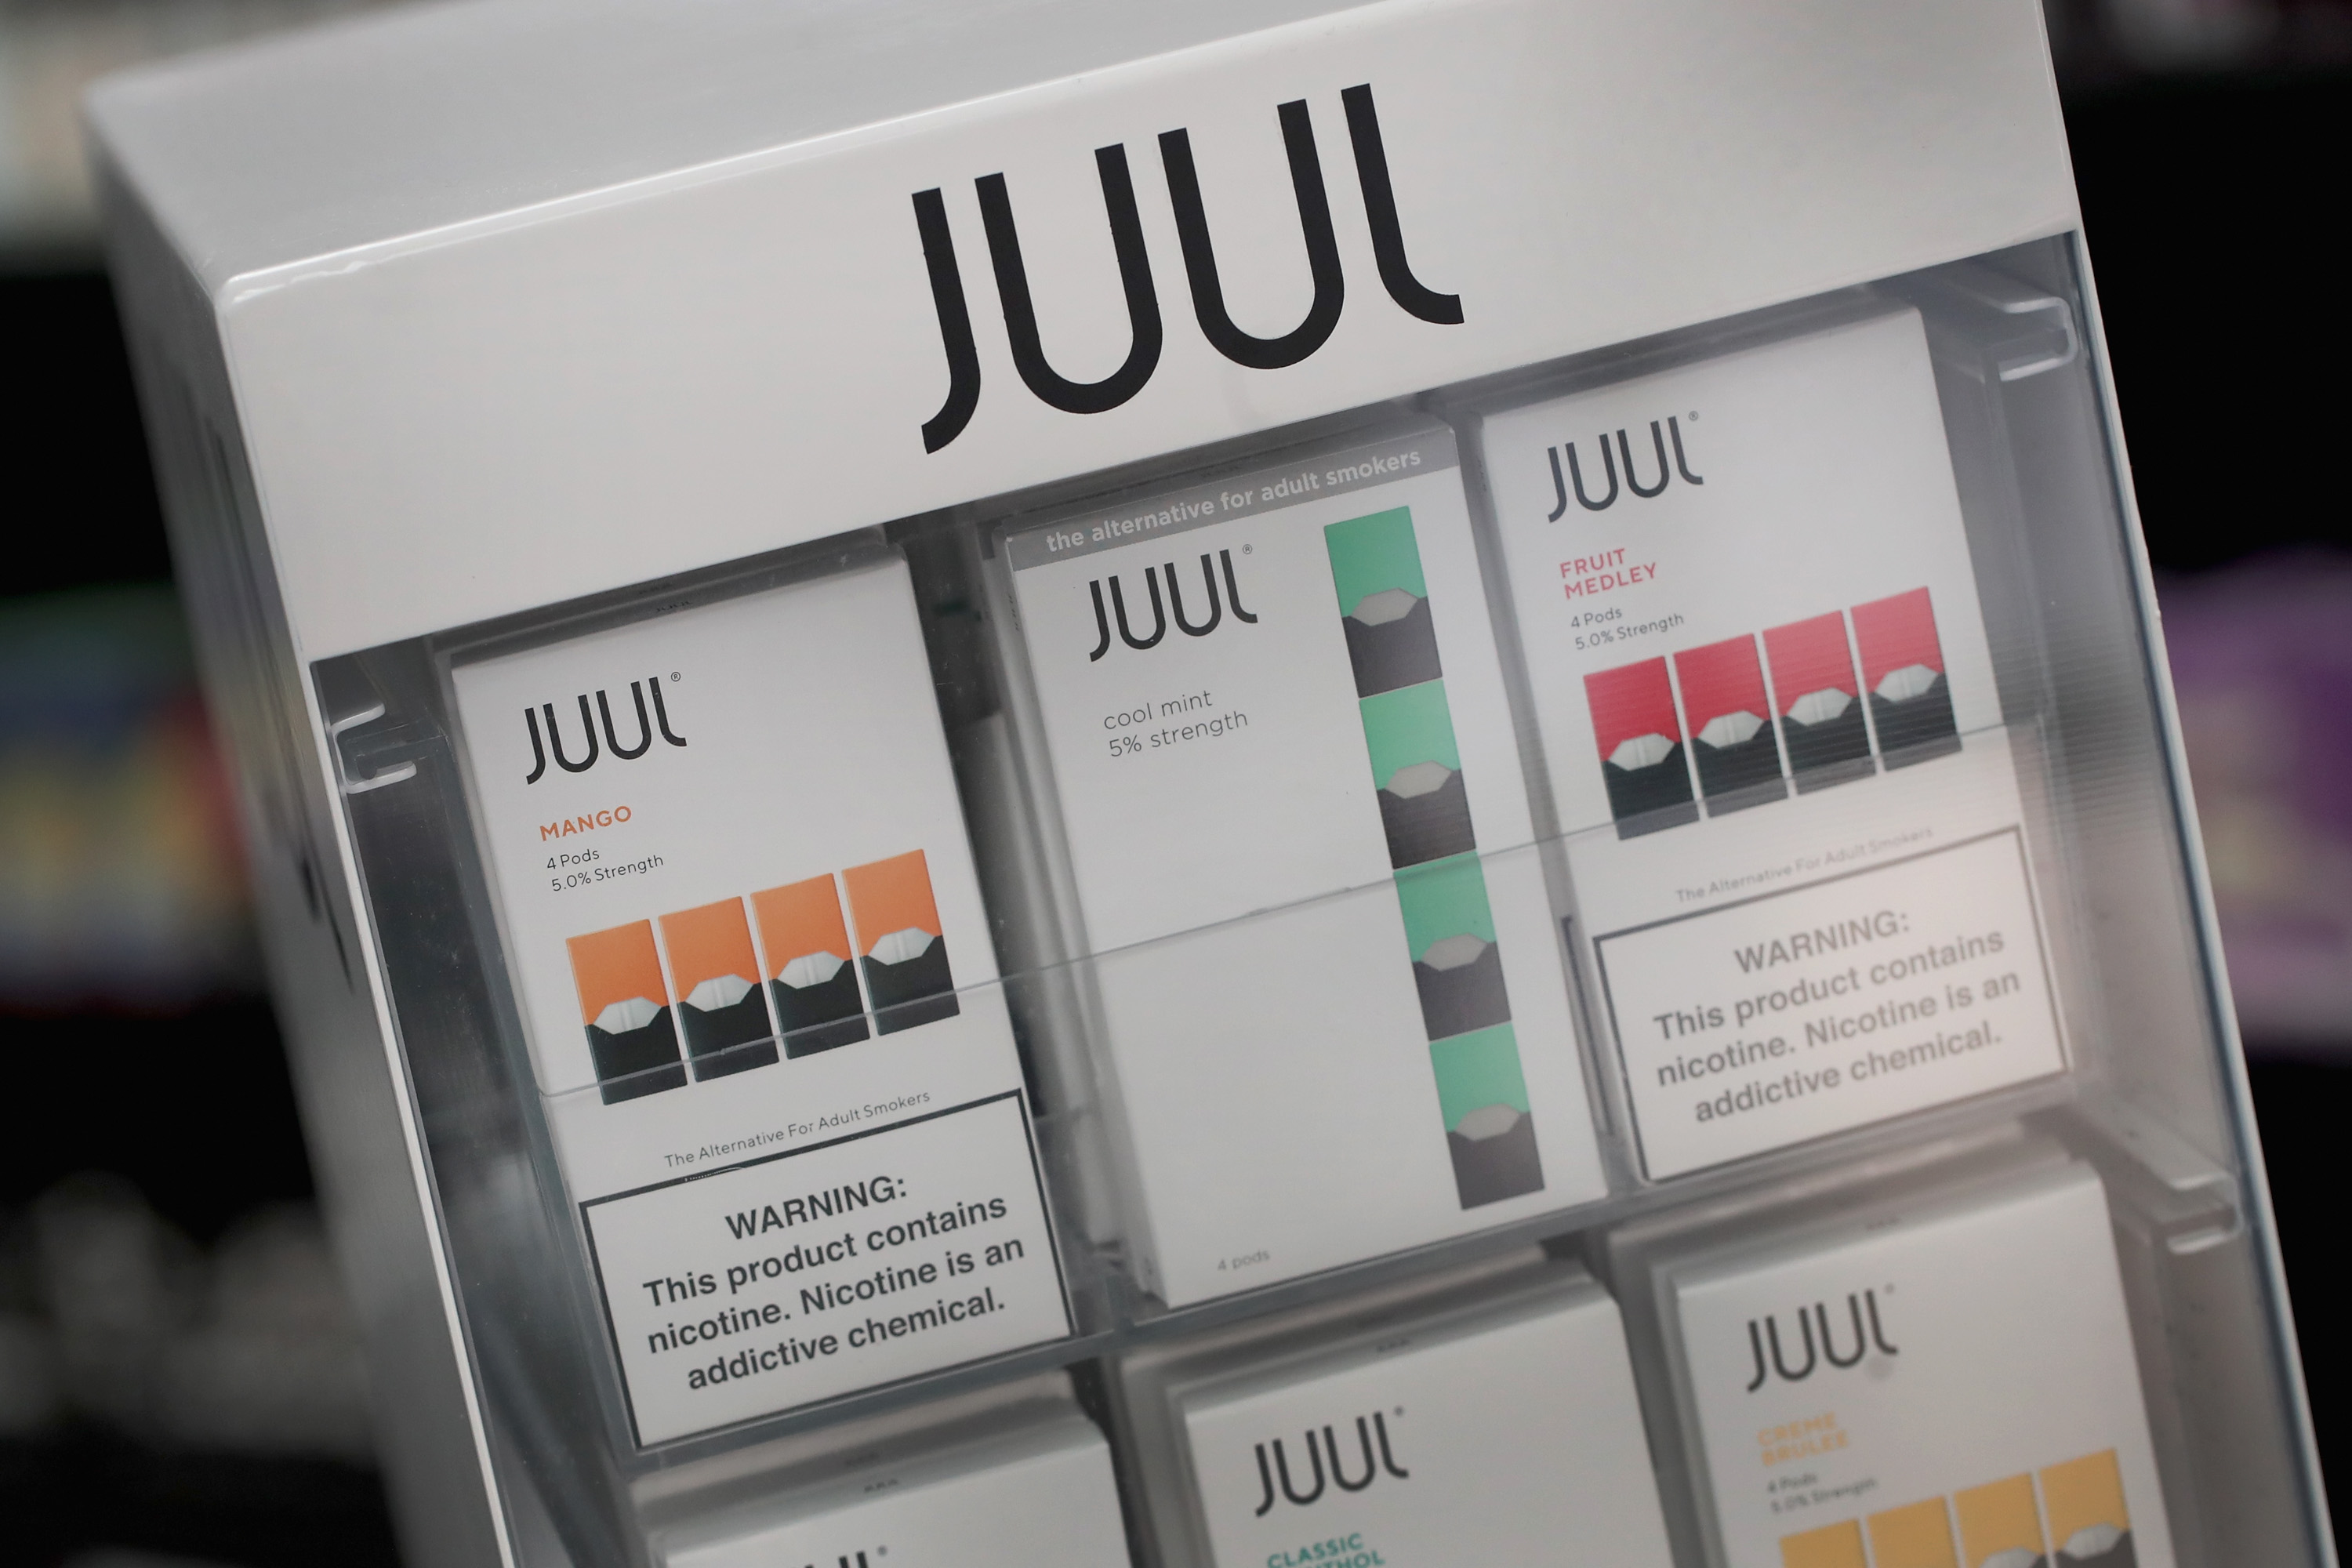 Electronic cigarettes and pods by Juul, the nation's largest maker of vaping products, are offered for sale at the Smoke Depot on September 13, 2018 in Chicago, Illinois. Scott Olson/Getty Images